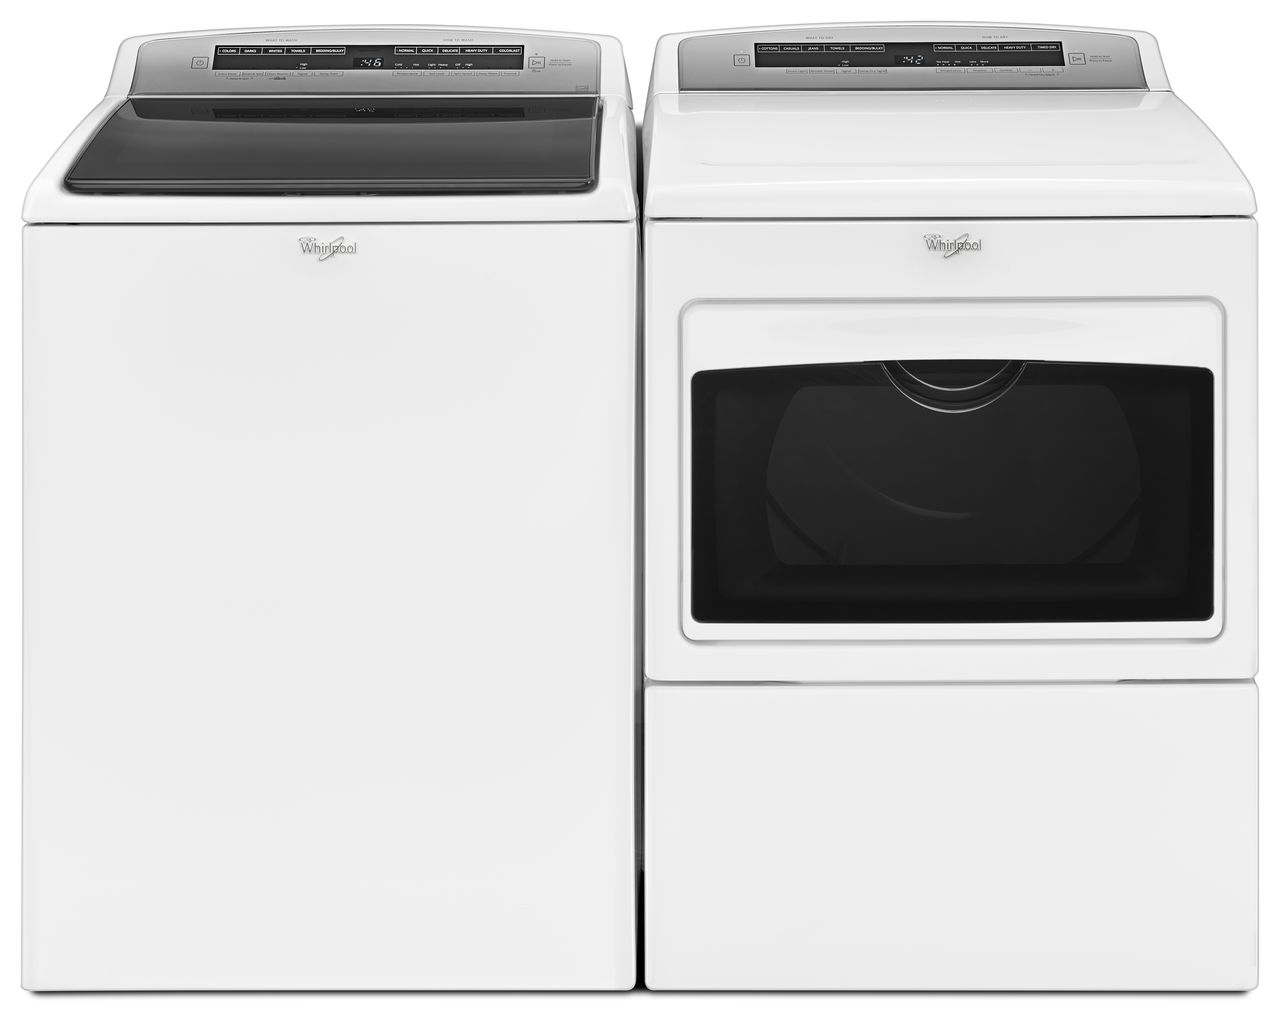 Whirlpool Cabrio 4.8 cu. ft. High-Efficiency Top Load Washer and 7.0 cu. ft. High-Efficiency Electric Dryer - White